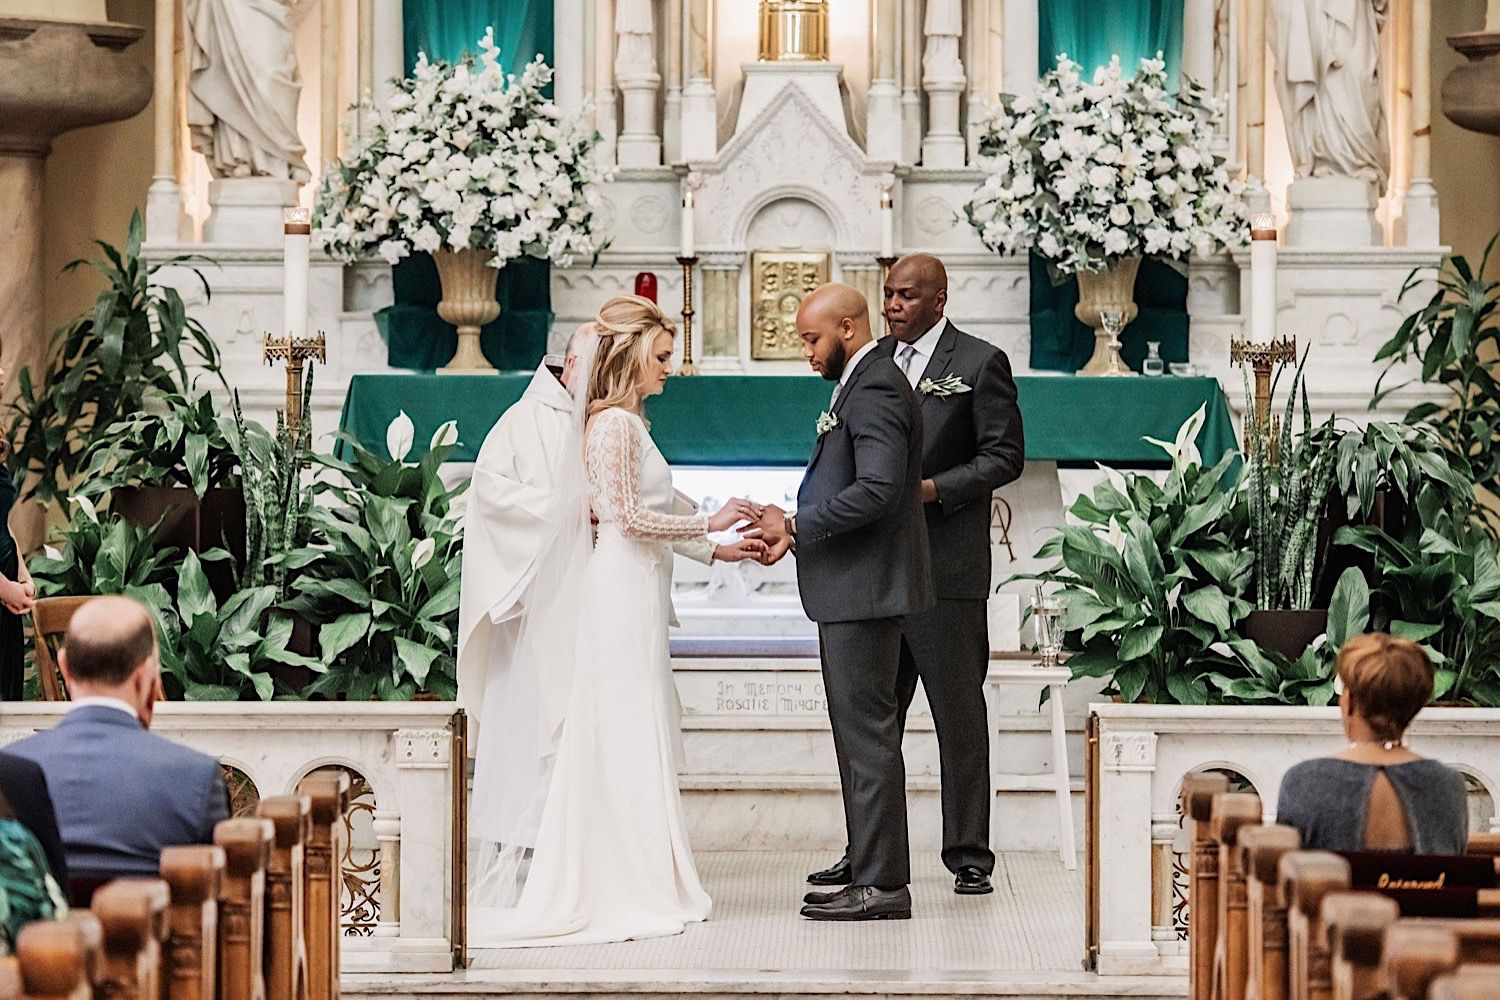 bride and groom exchanging rings at the altar at sacred heart church